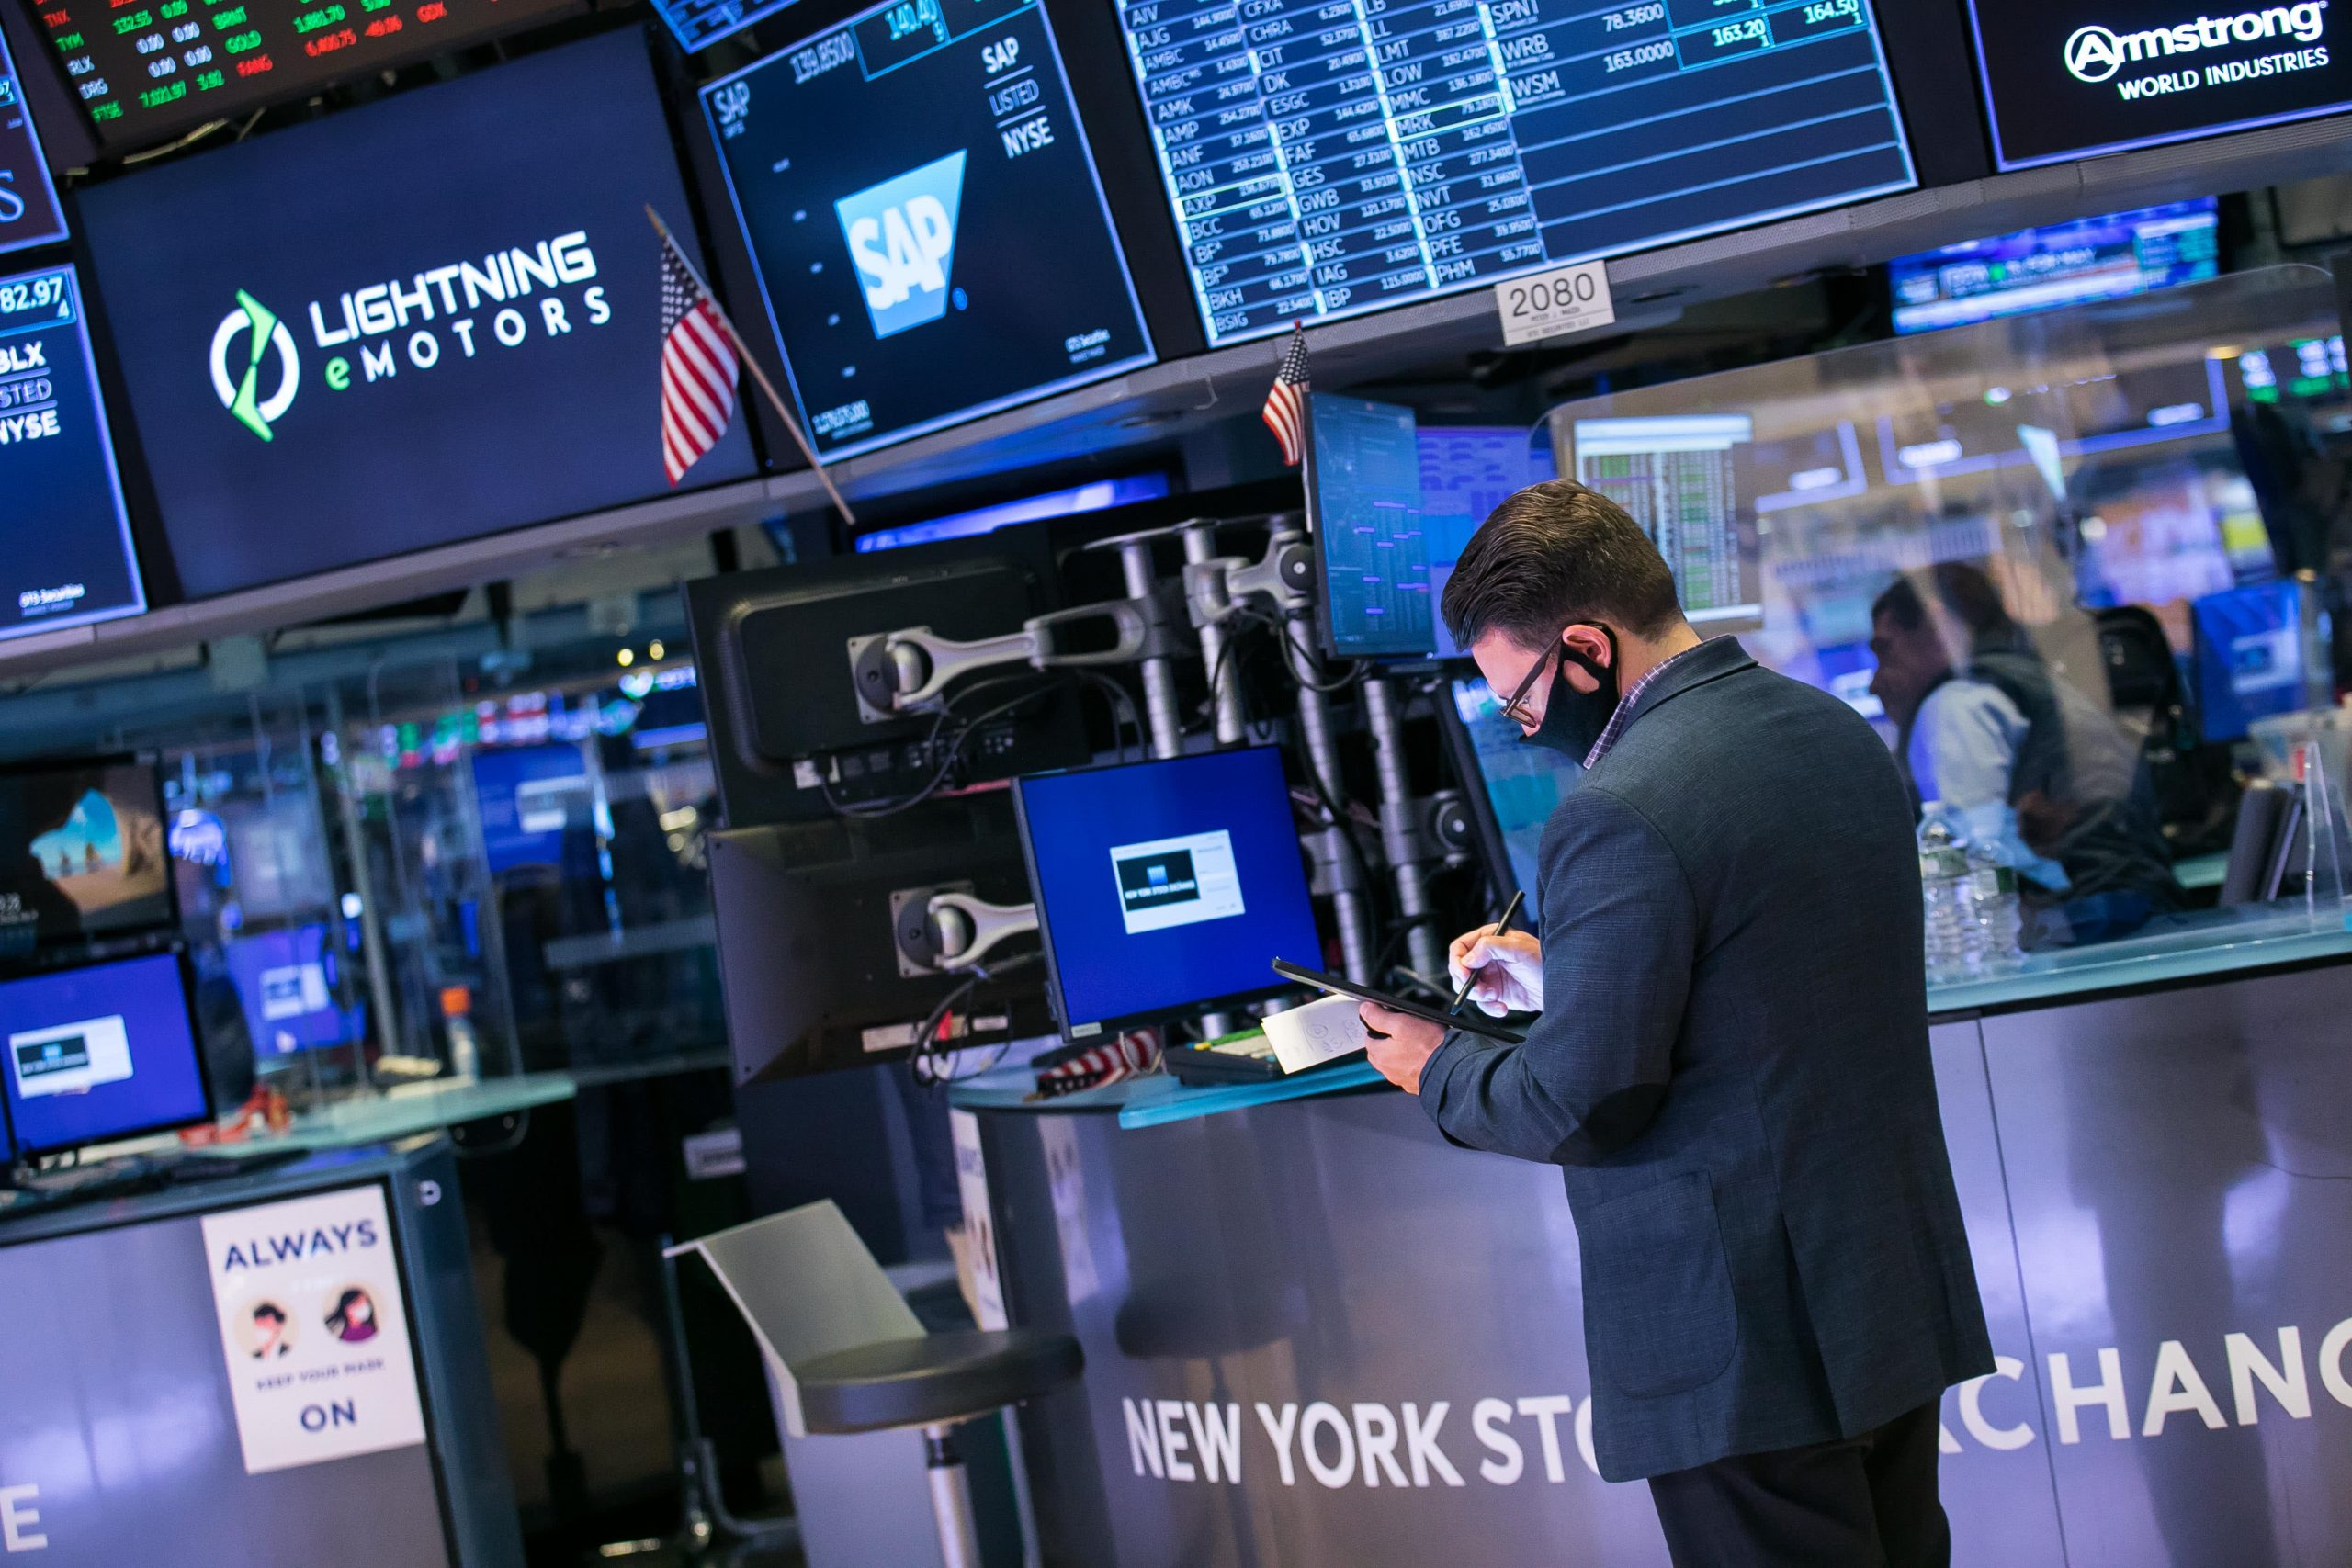 Stock futures rise slightly after Wall Street posts slight decline